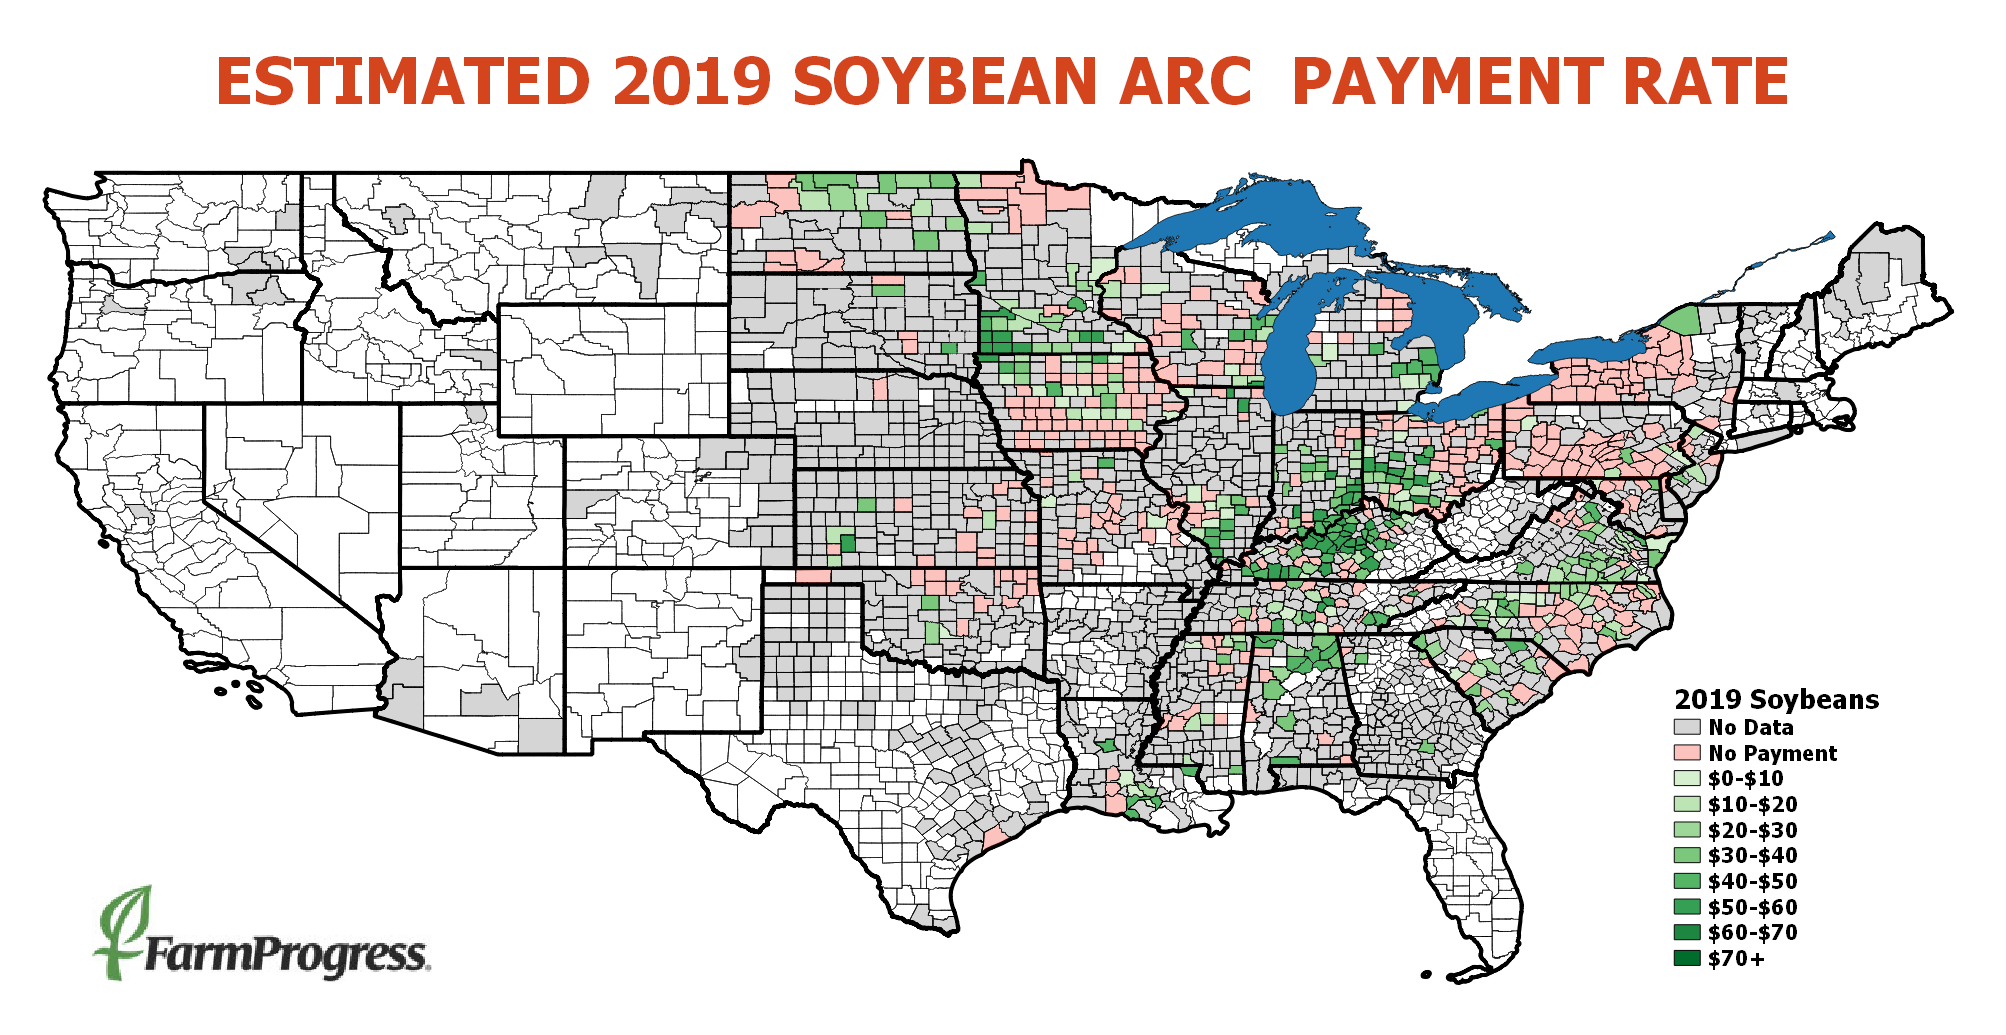 030220Soybean ARC Payments.png